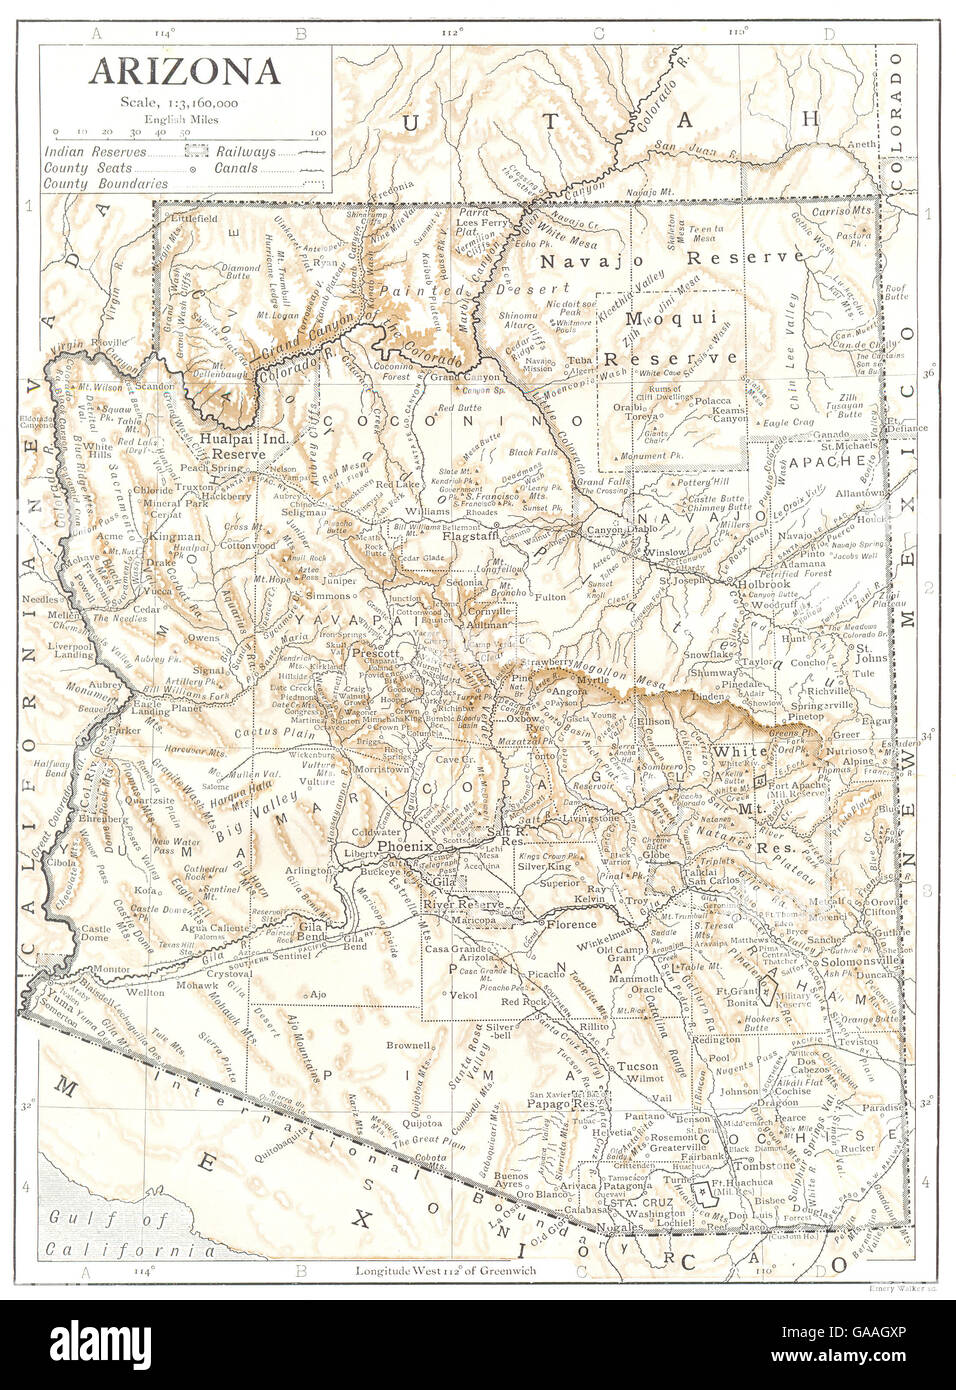 Counties Of Arizona Map.Arizona State Map Showing Counties Indian Reservations 1910 Stock